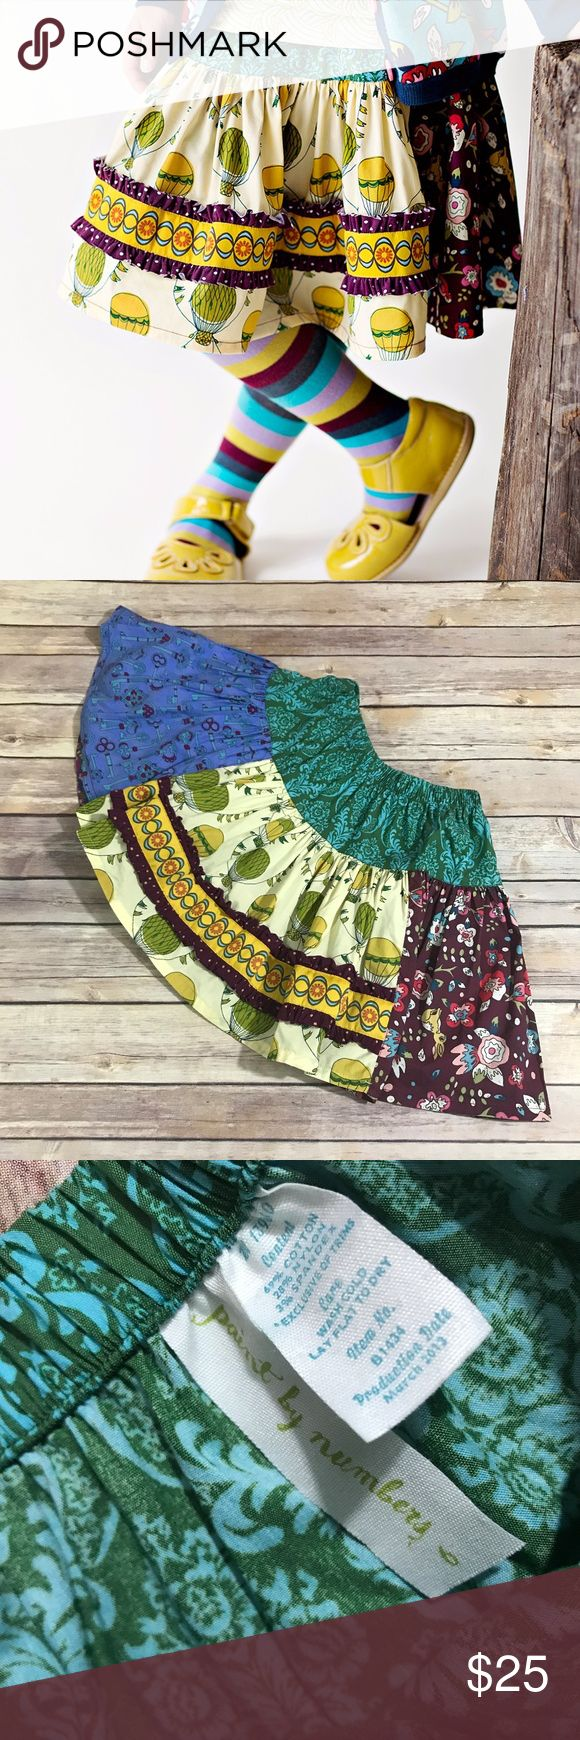 Matilda Jane Paint by Numbers Blarney Molly 6 Matilda Jane Paint by Numbers Blarney Stone Molly Skirt 6   Super cute, excellent condition.  #mjaddicts #mjmolly #mjpaintbynumbers #paintbynumbers #molly #blarneystone #hotairballoons #hotairballoon #rabbit #bunnies #skirt #itsaskirt Matilda Jane Bottoms Skirts